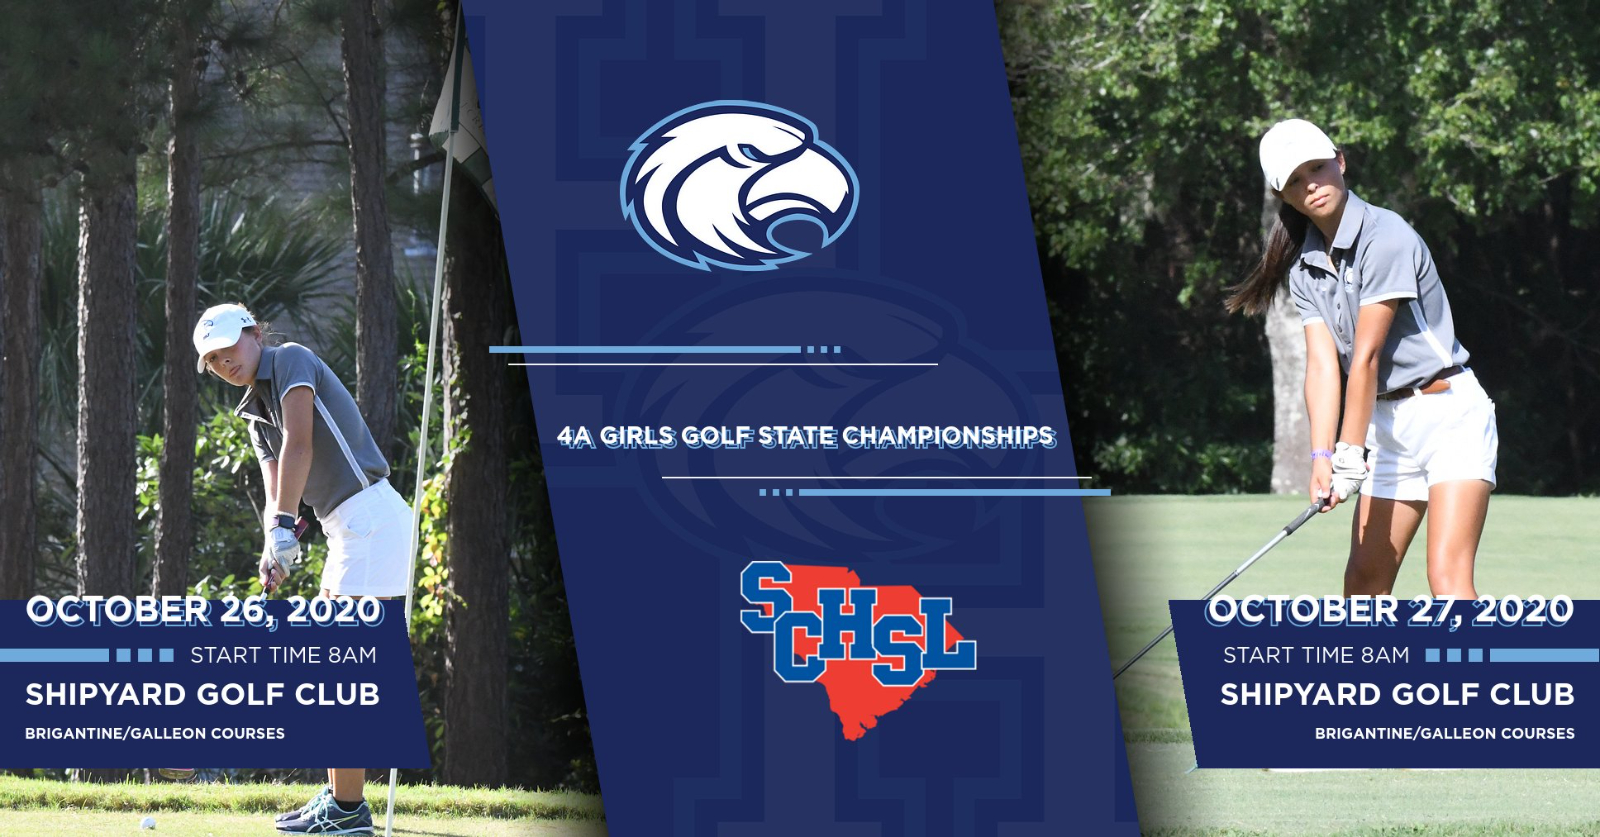 Seahawks Host 4A Golf State Championship 10/26-10/27